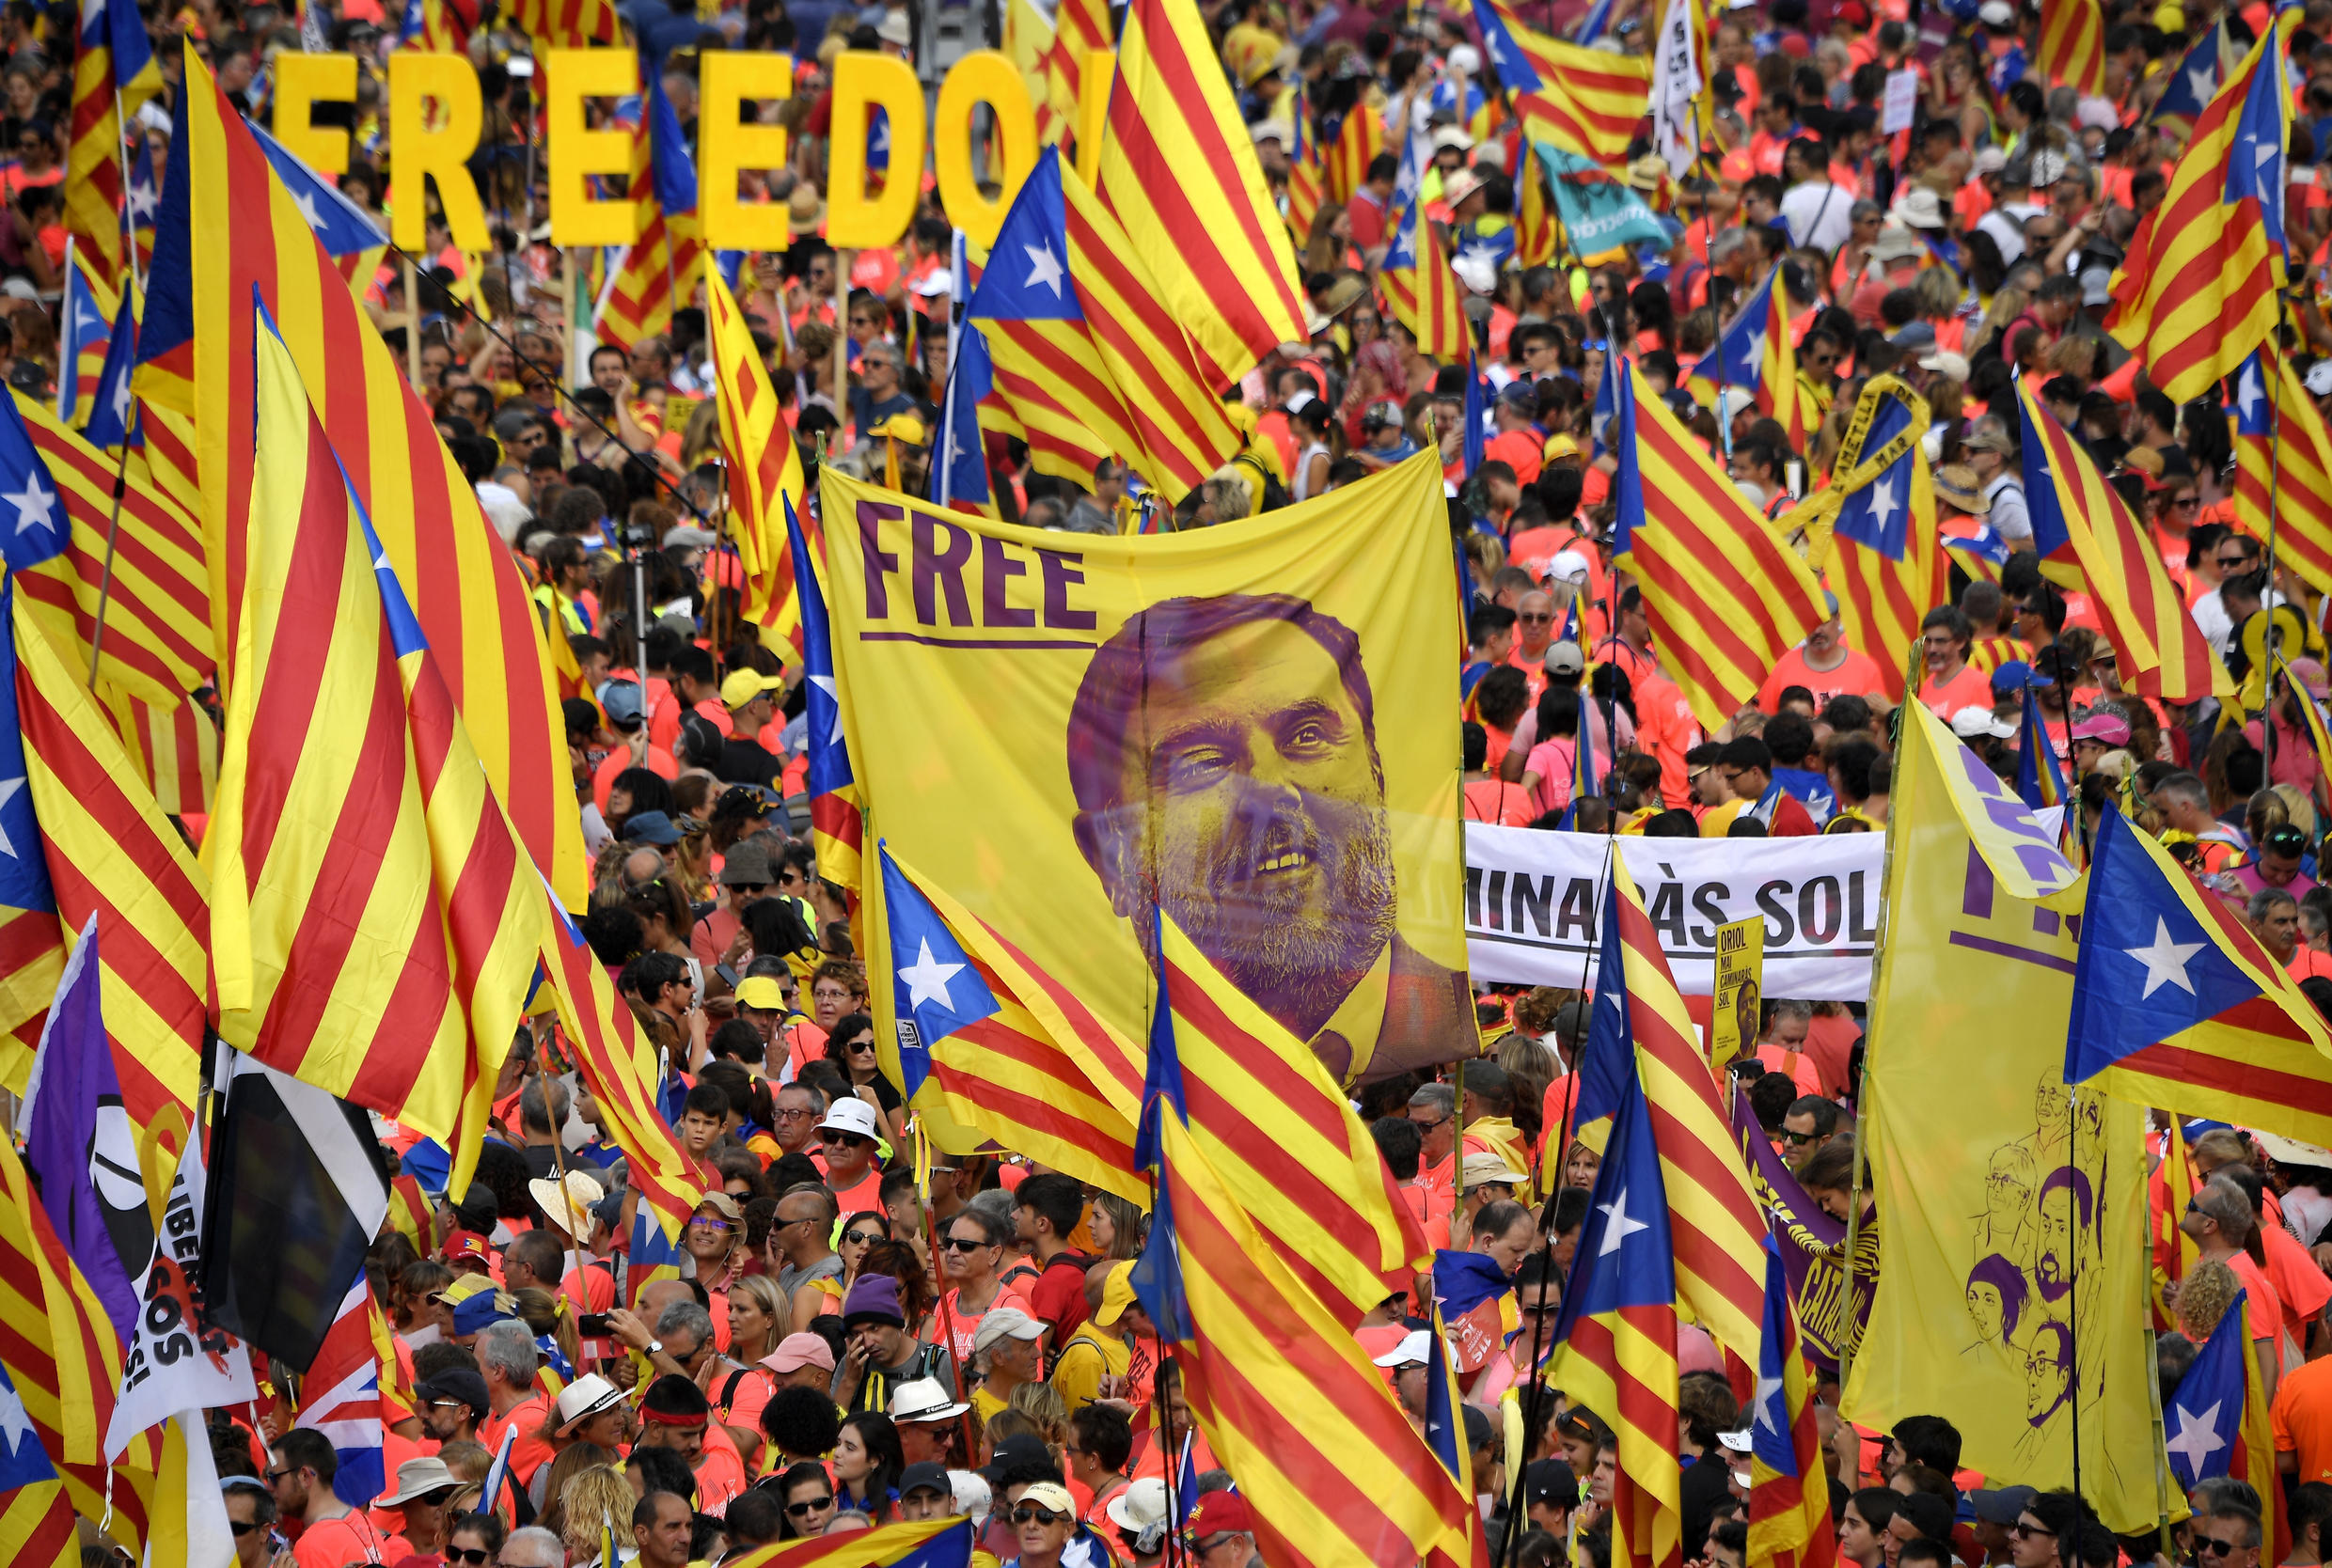 The separatists were convicted over a banned referendum in October 2017 that was marred by police violence and followed by a short-lived declaration of independence, sparking Spain's worst political crisis in decades